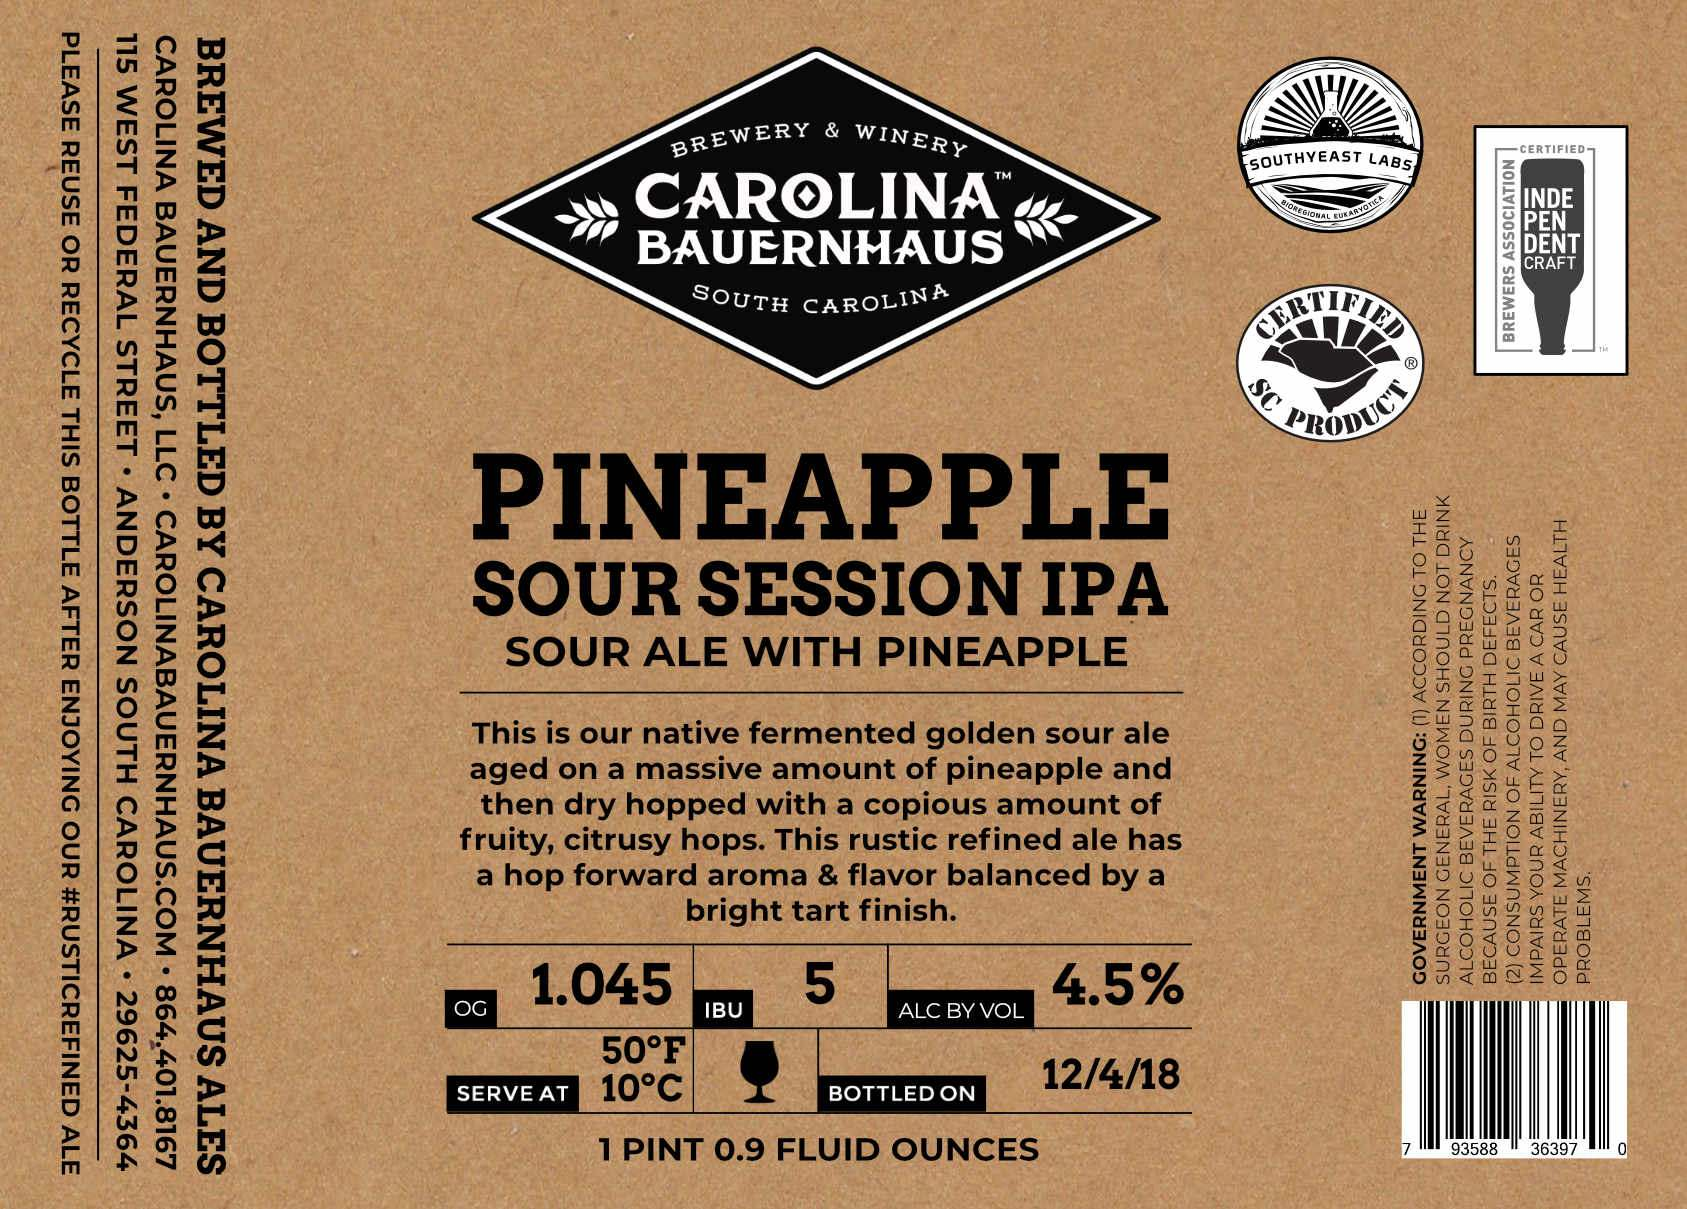 Pineapple Sour Session IPA